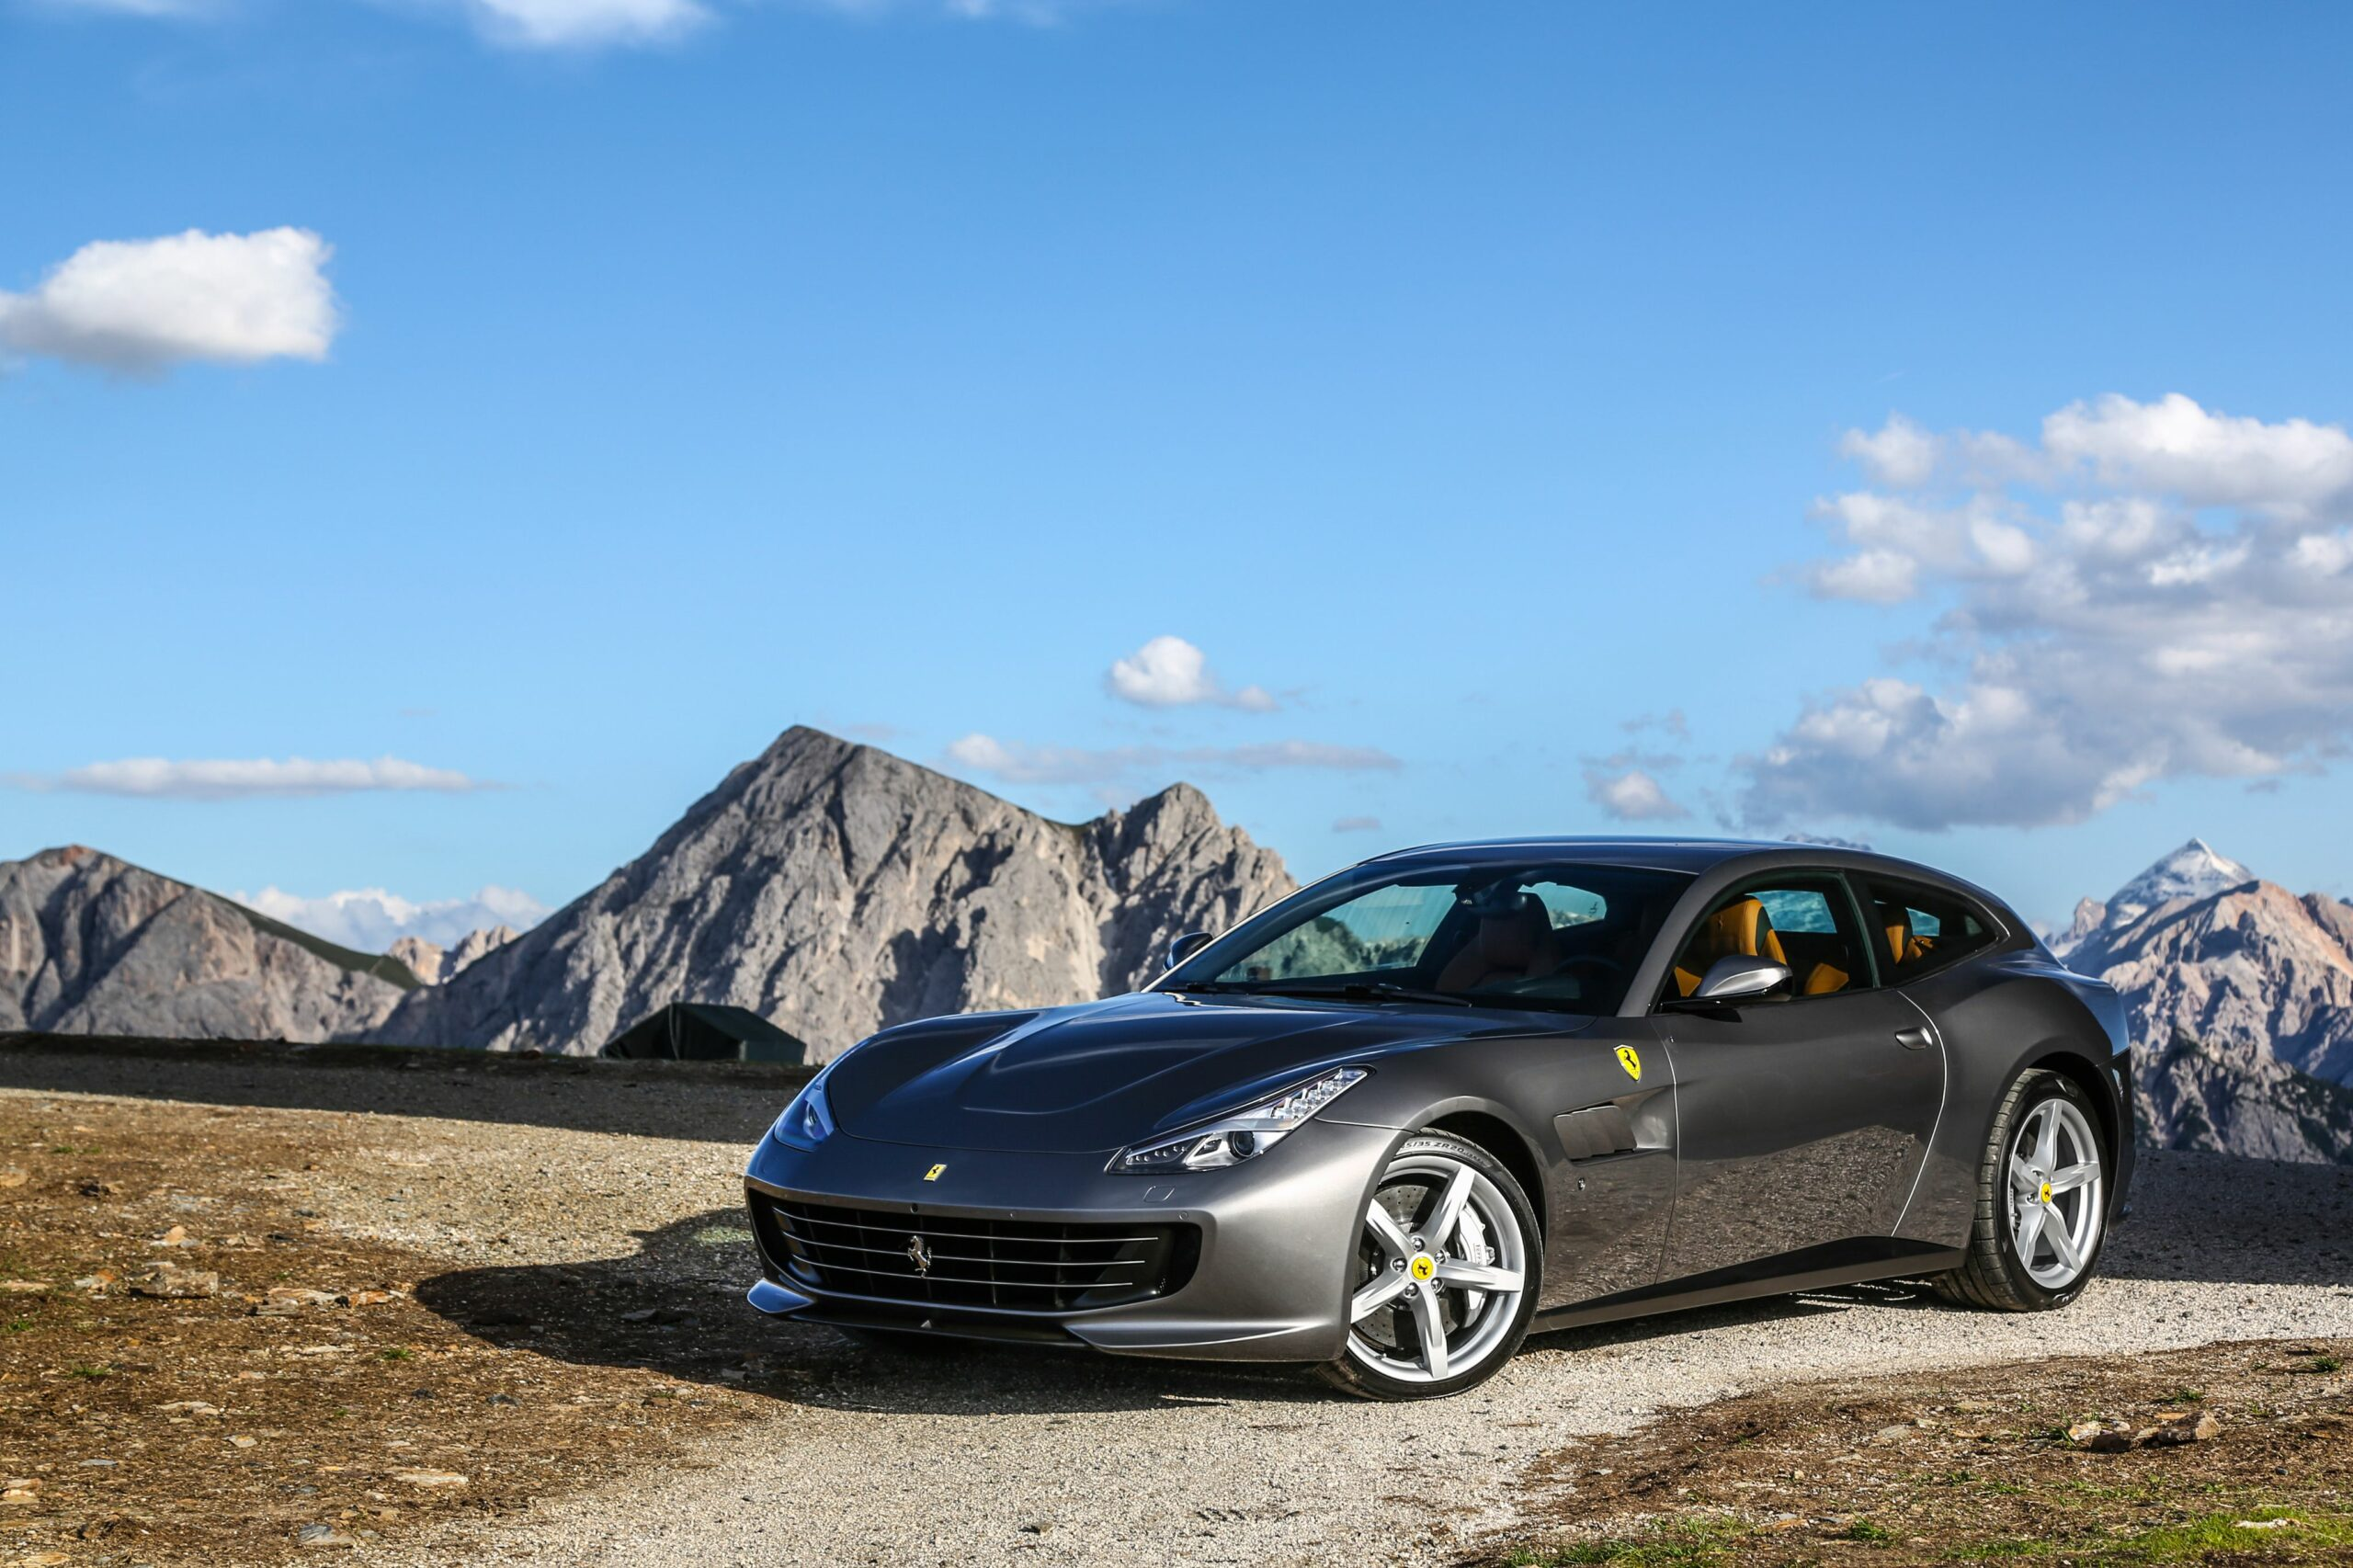 Ferrari GTC4 Lusso T Wallpapers